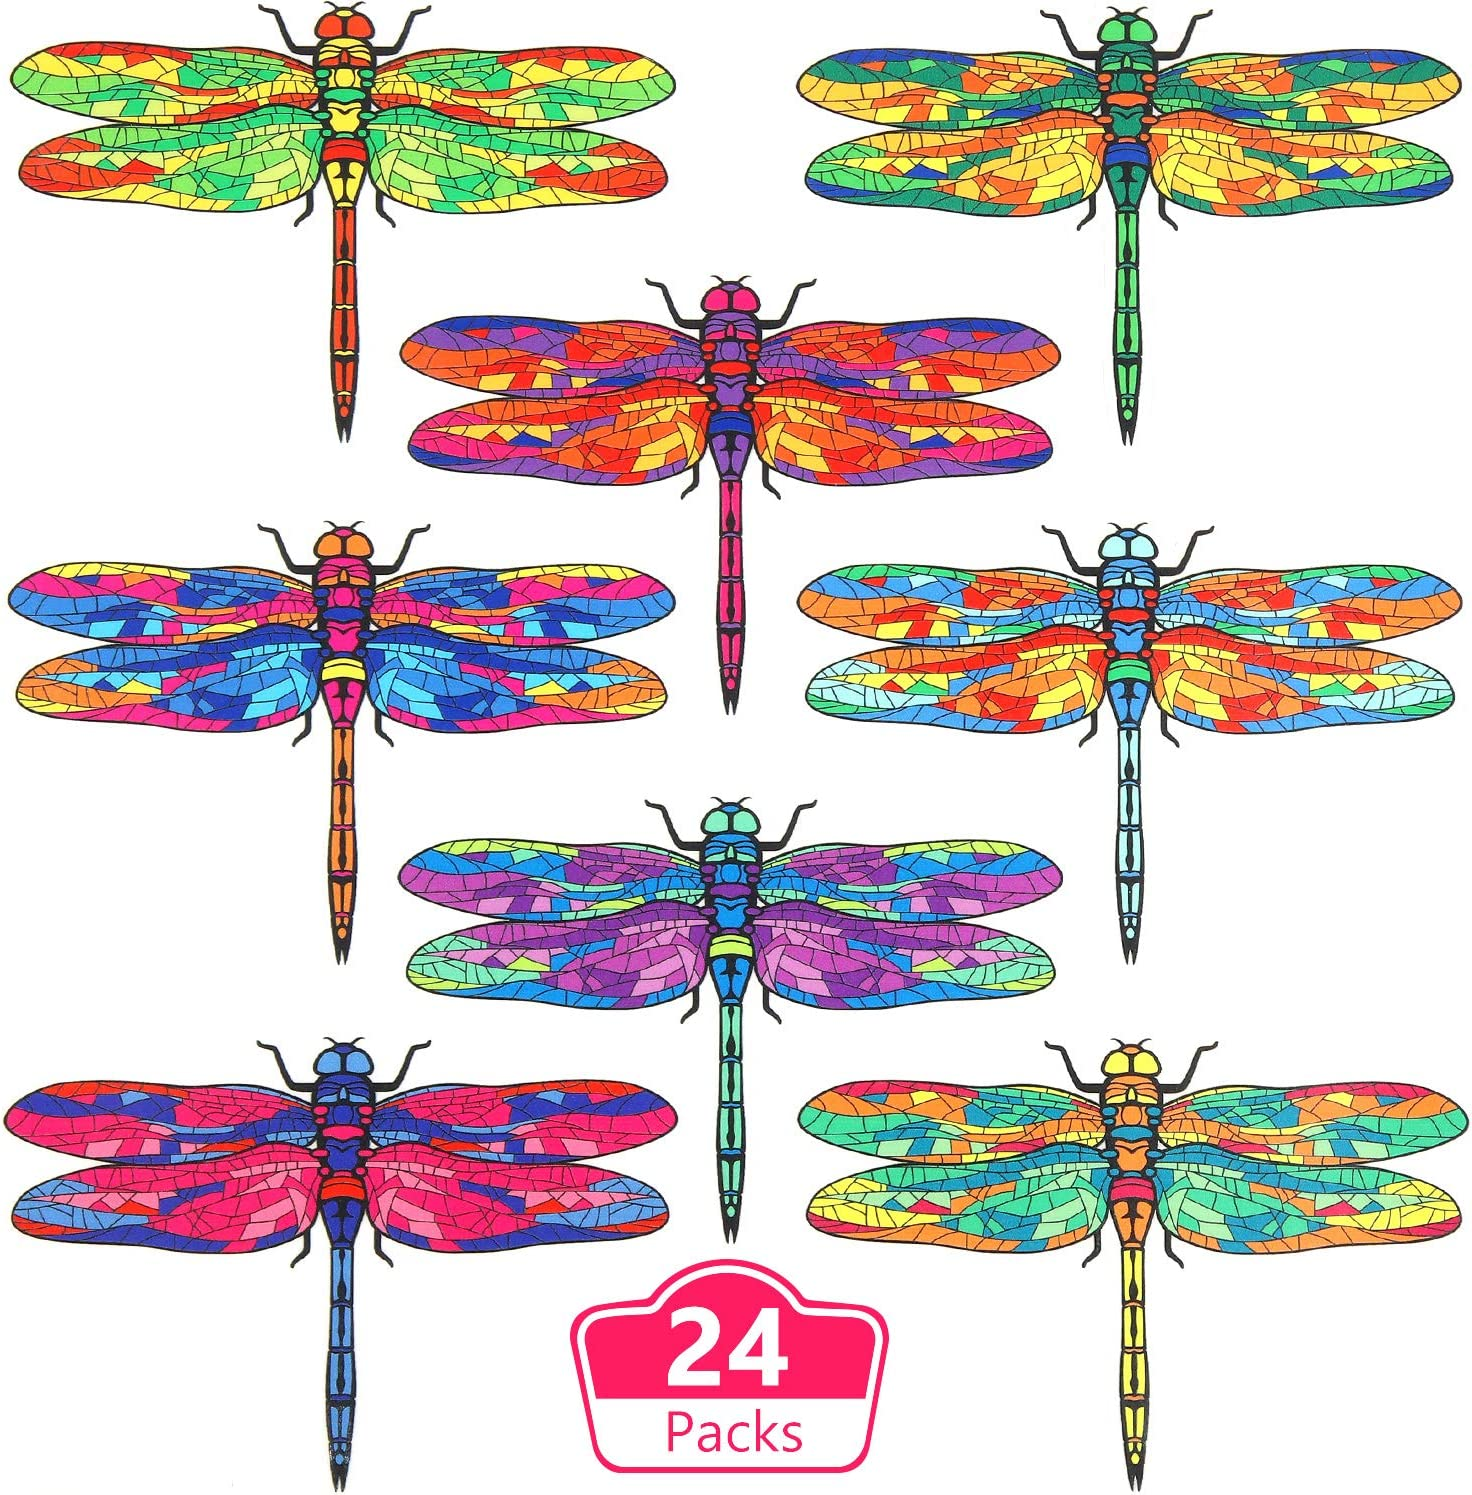 Outus 24 Pieces Dragonfly Window Clings Anti-Collision Decorative Window Decals Non Adhesive Vinyl Clings to Alert Prevent Bird Strikes on Window Glass